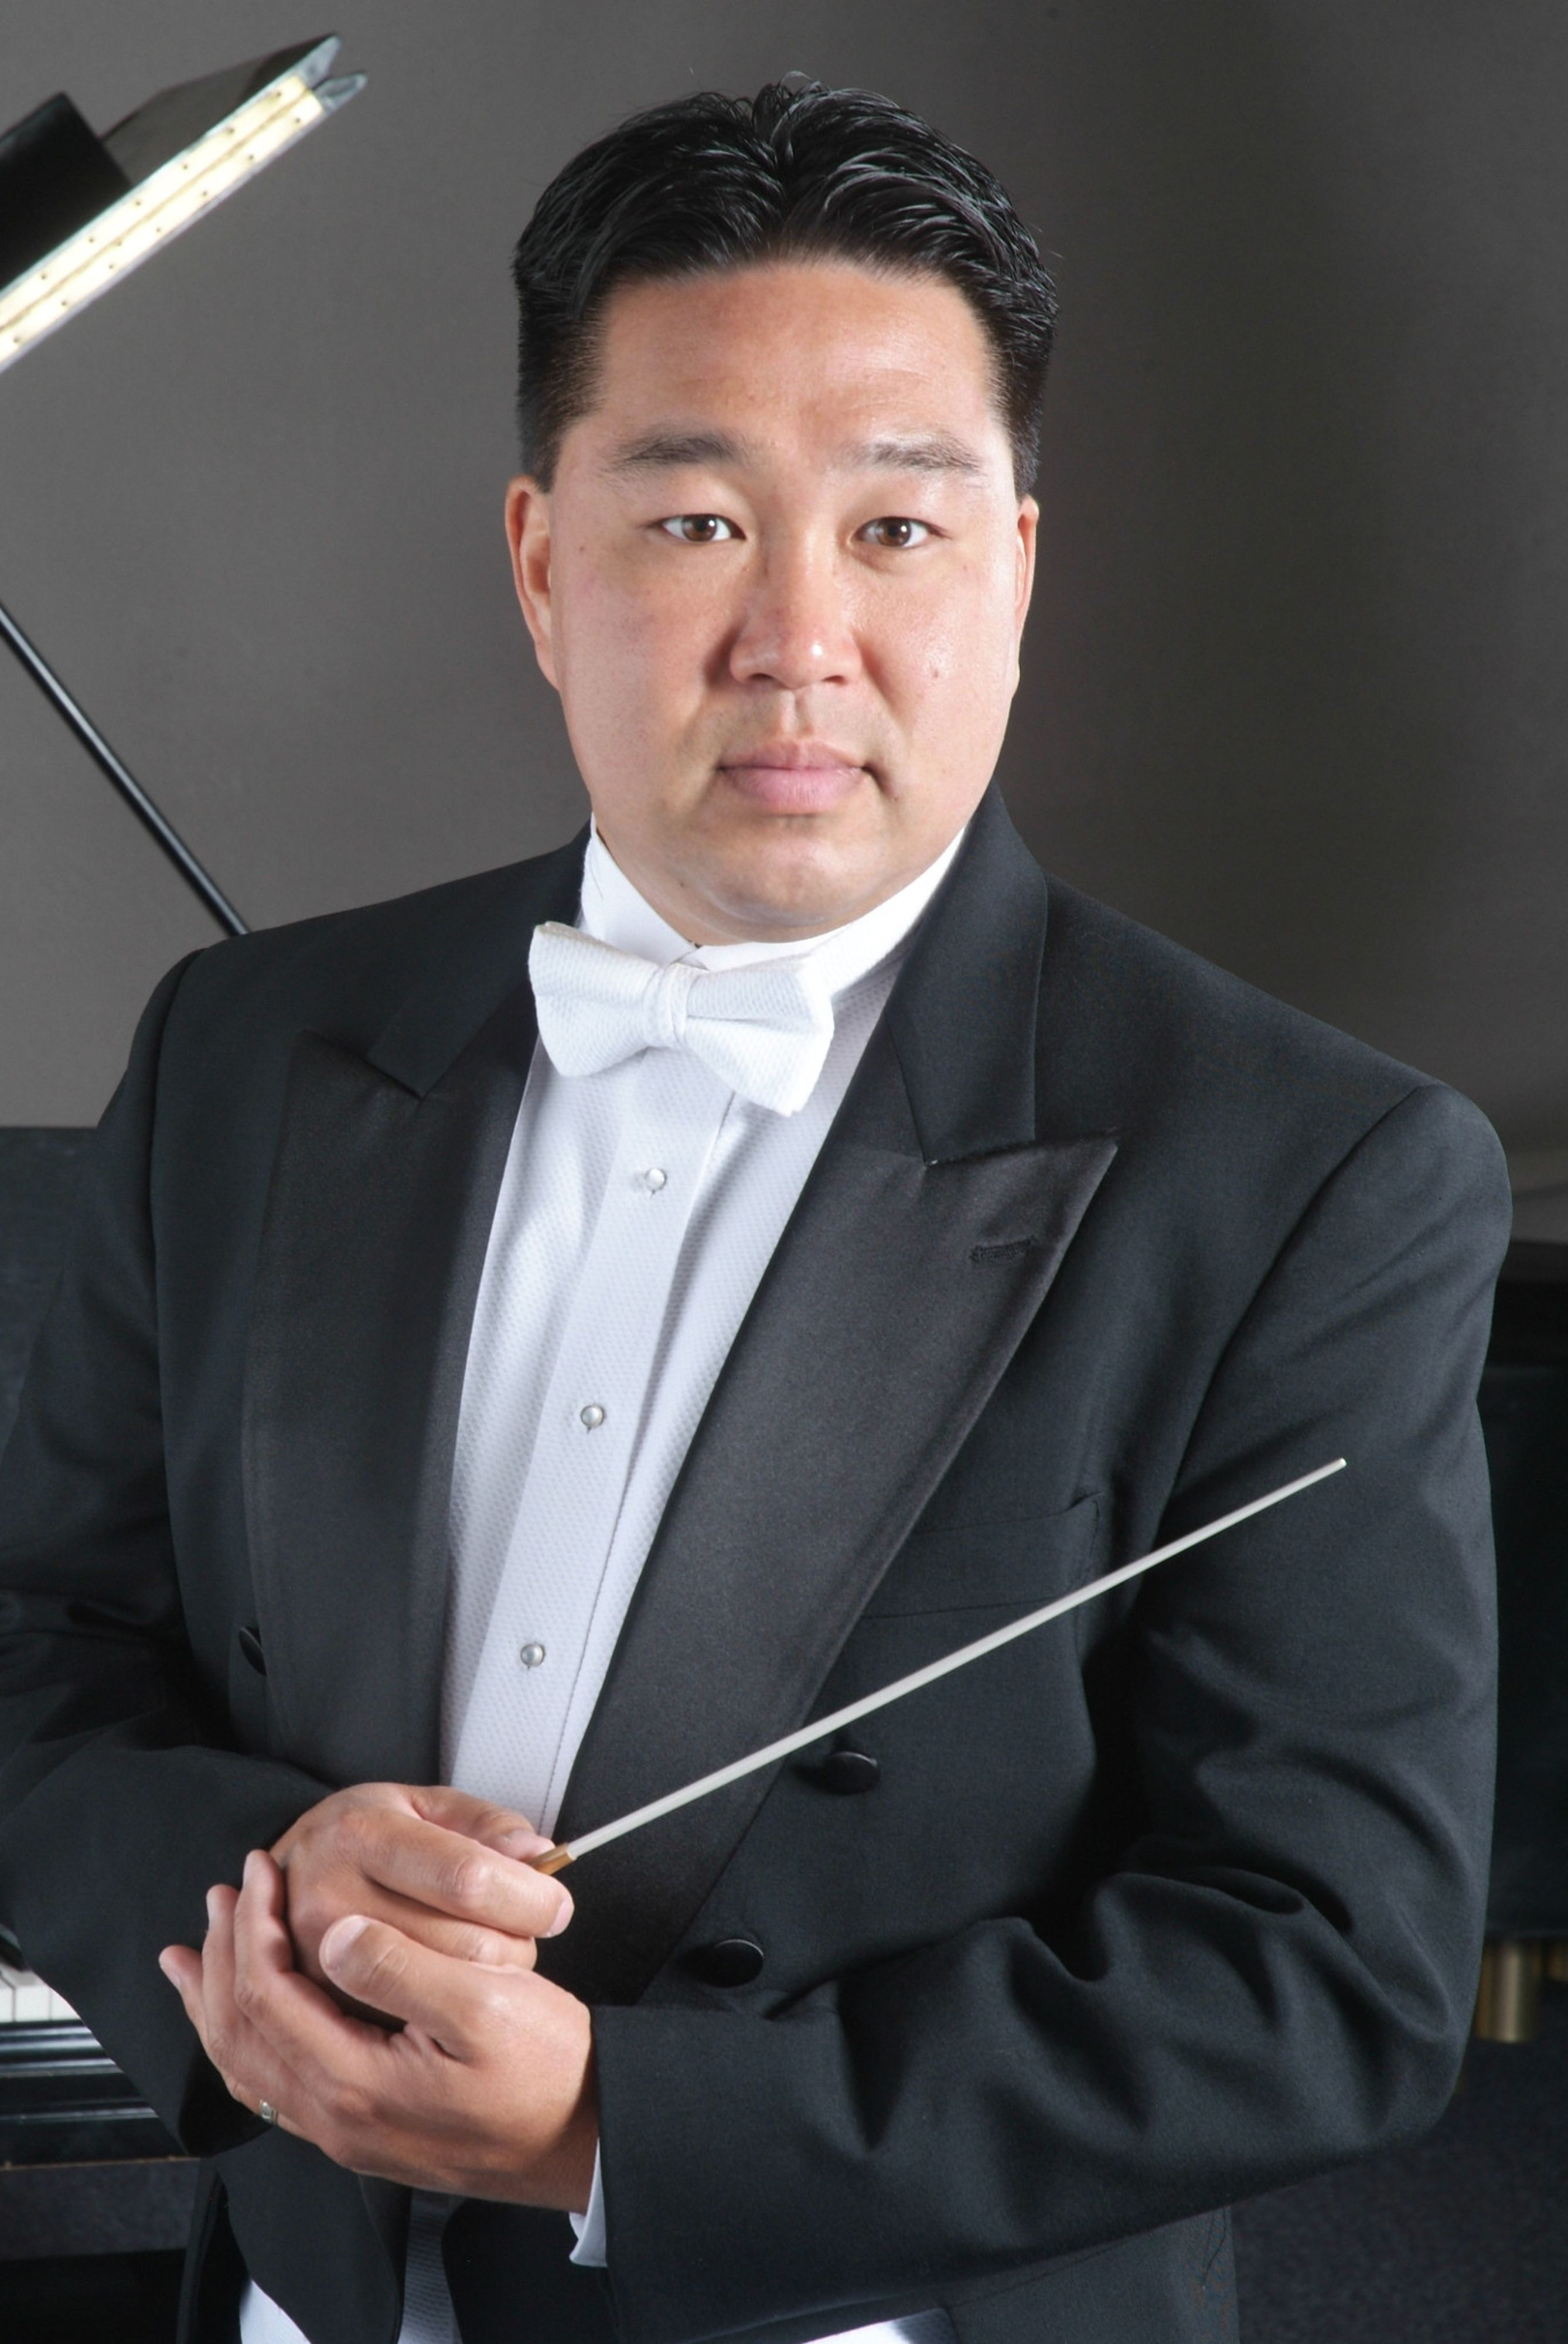 Kyle Fleming holding conductor's baton